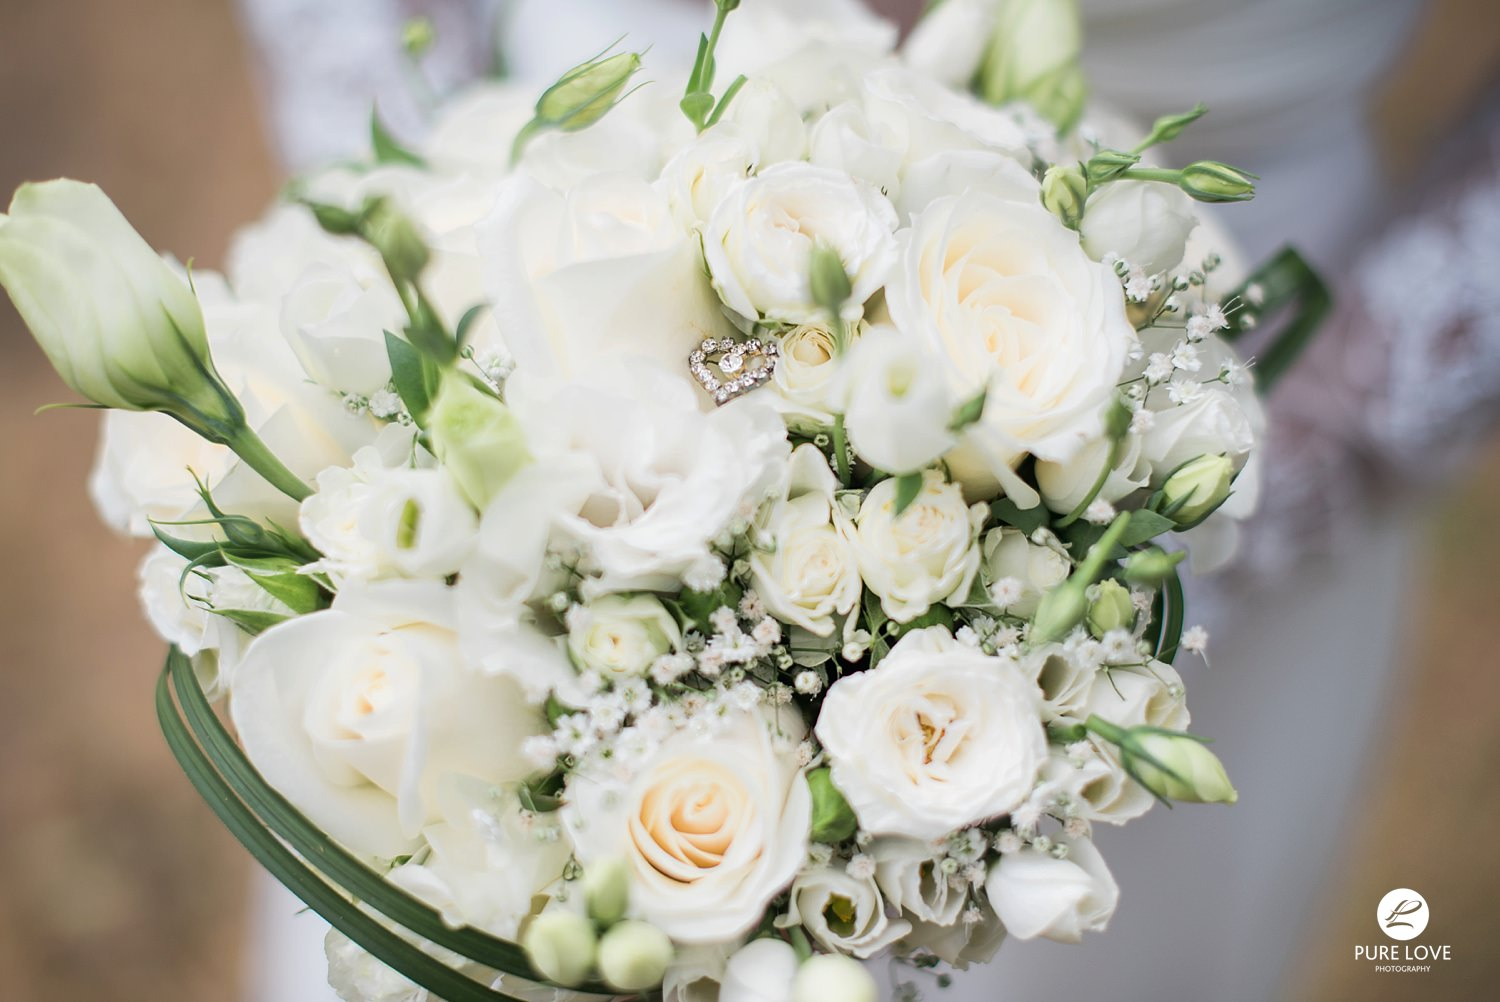 brides flowers bouquet white roses